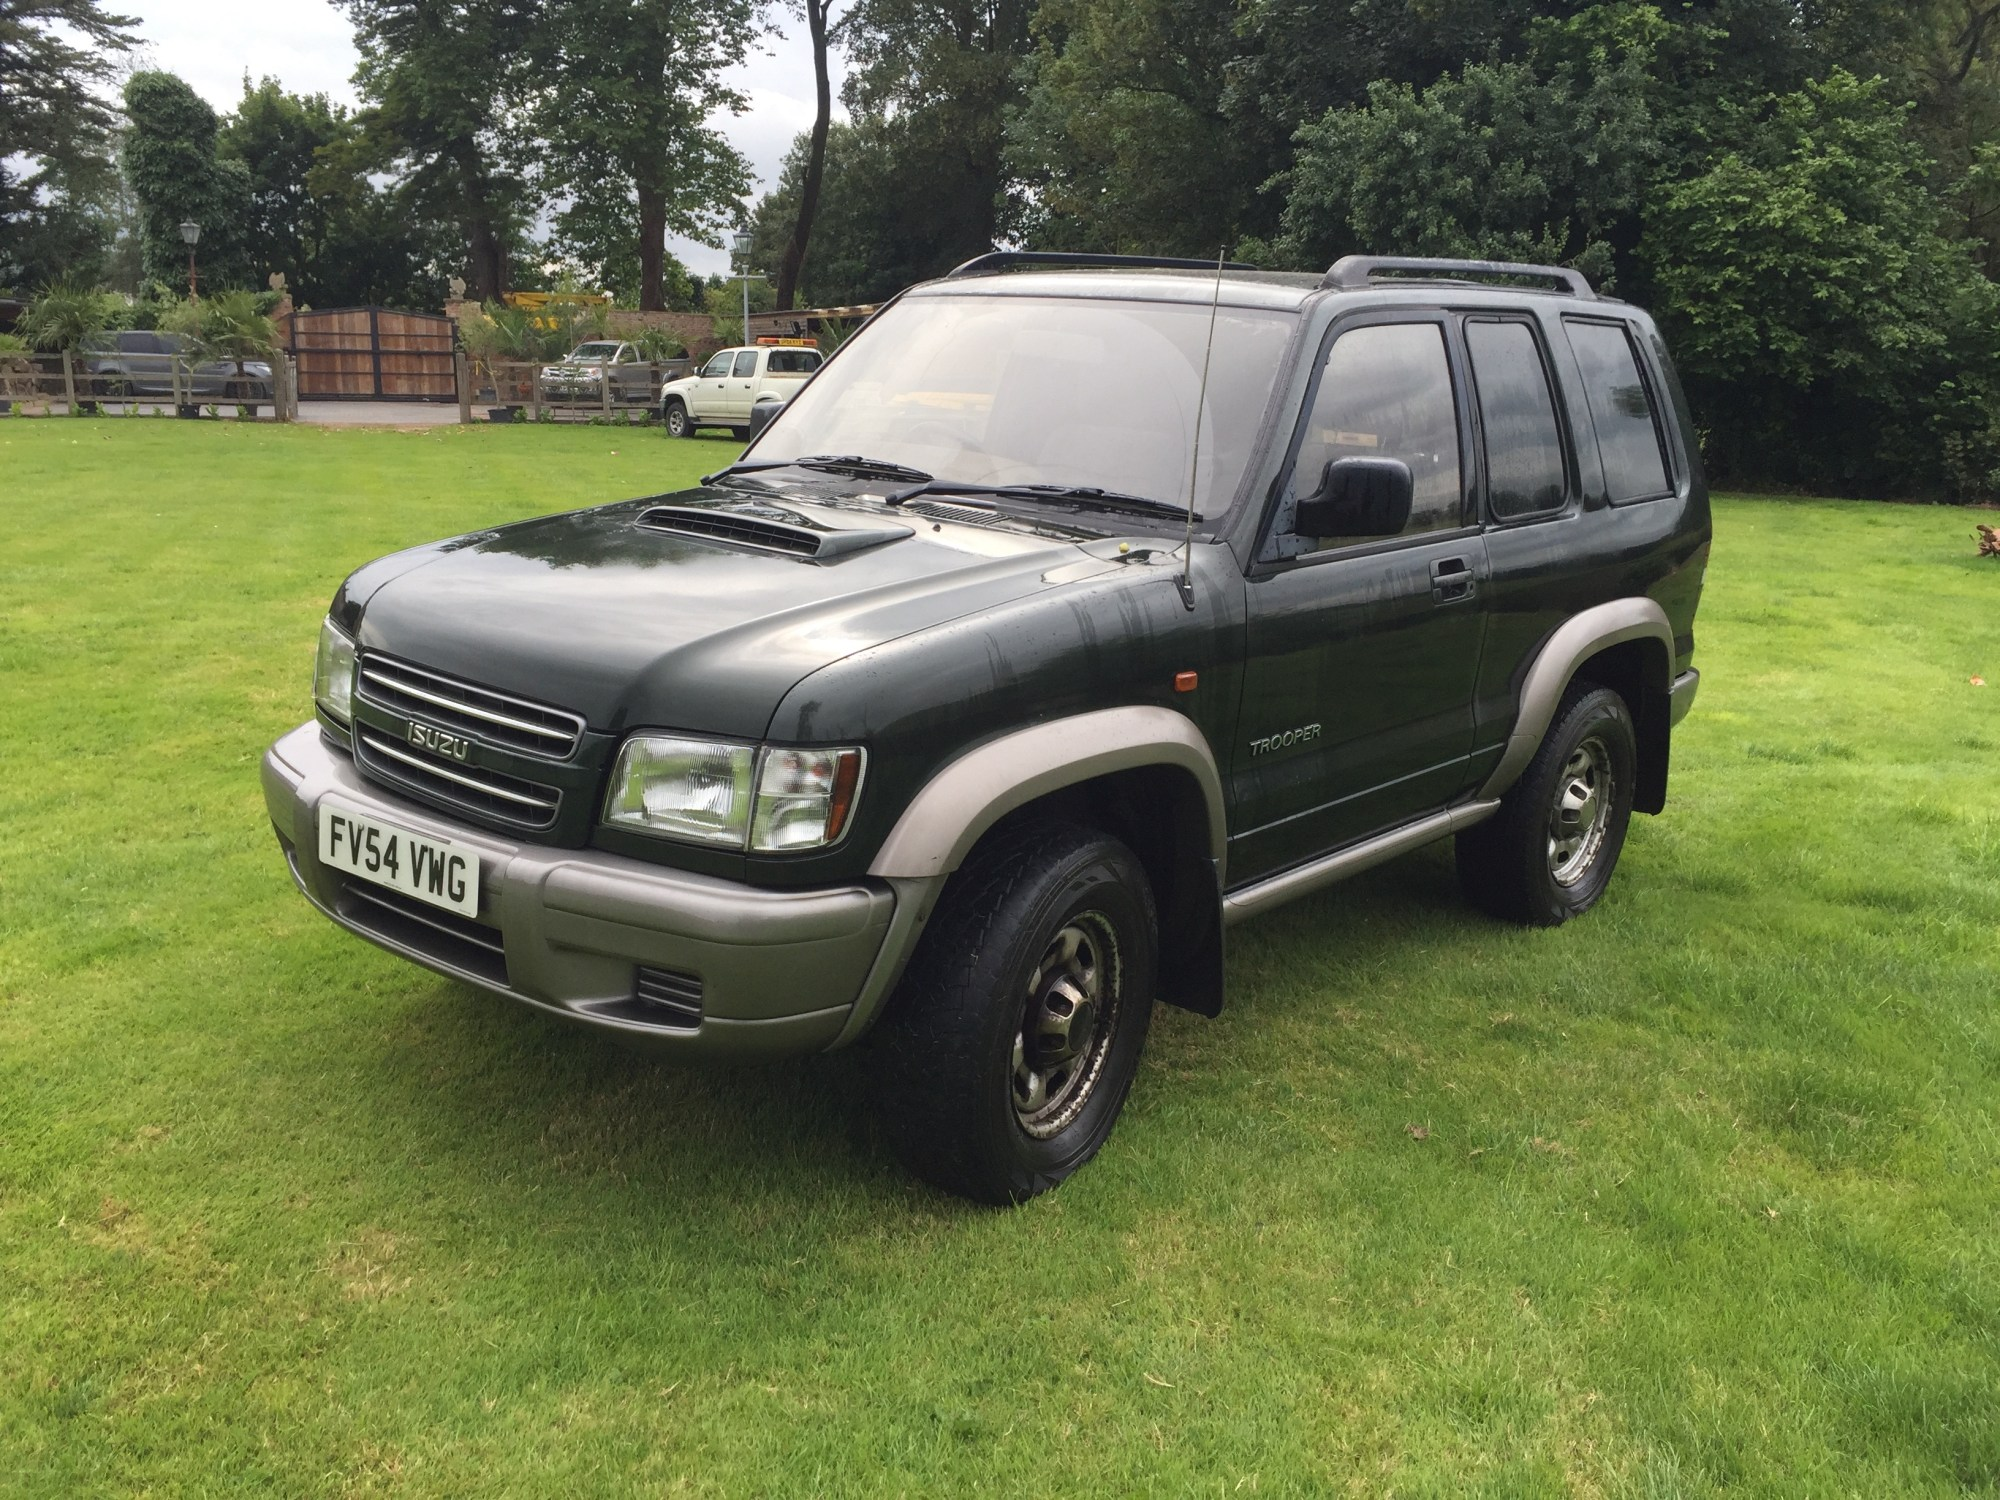 hight resolution of lotto 73 2005 isuzu trooper commercial 3 0l turbo diesel 4x4 no vat one